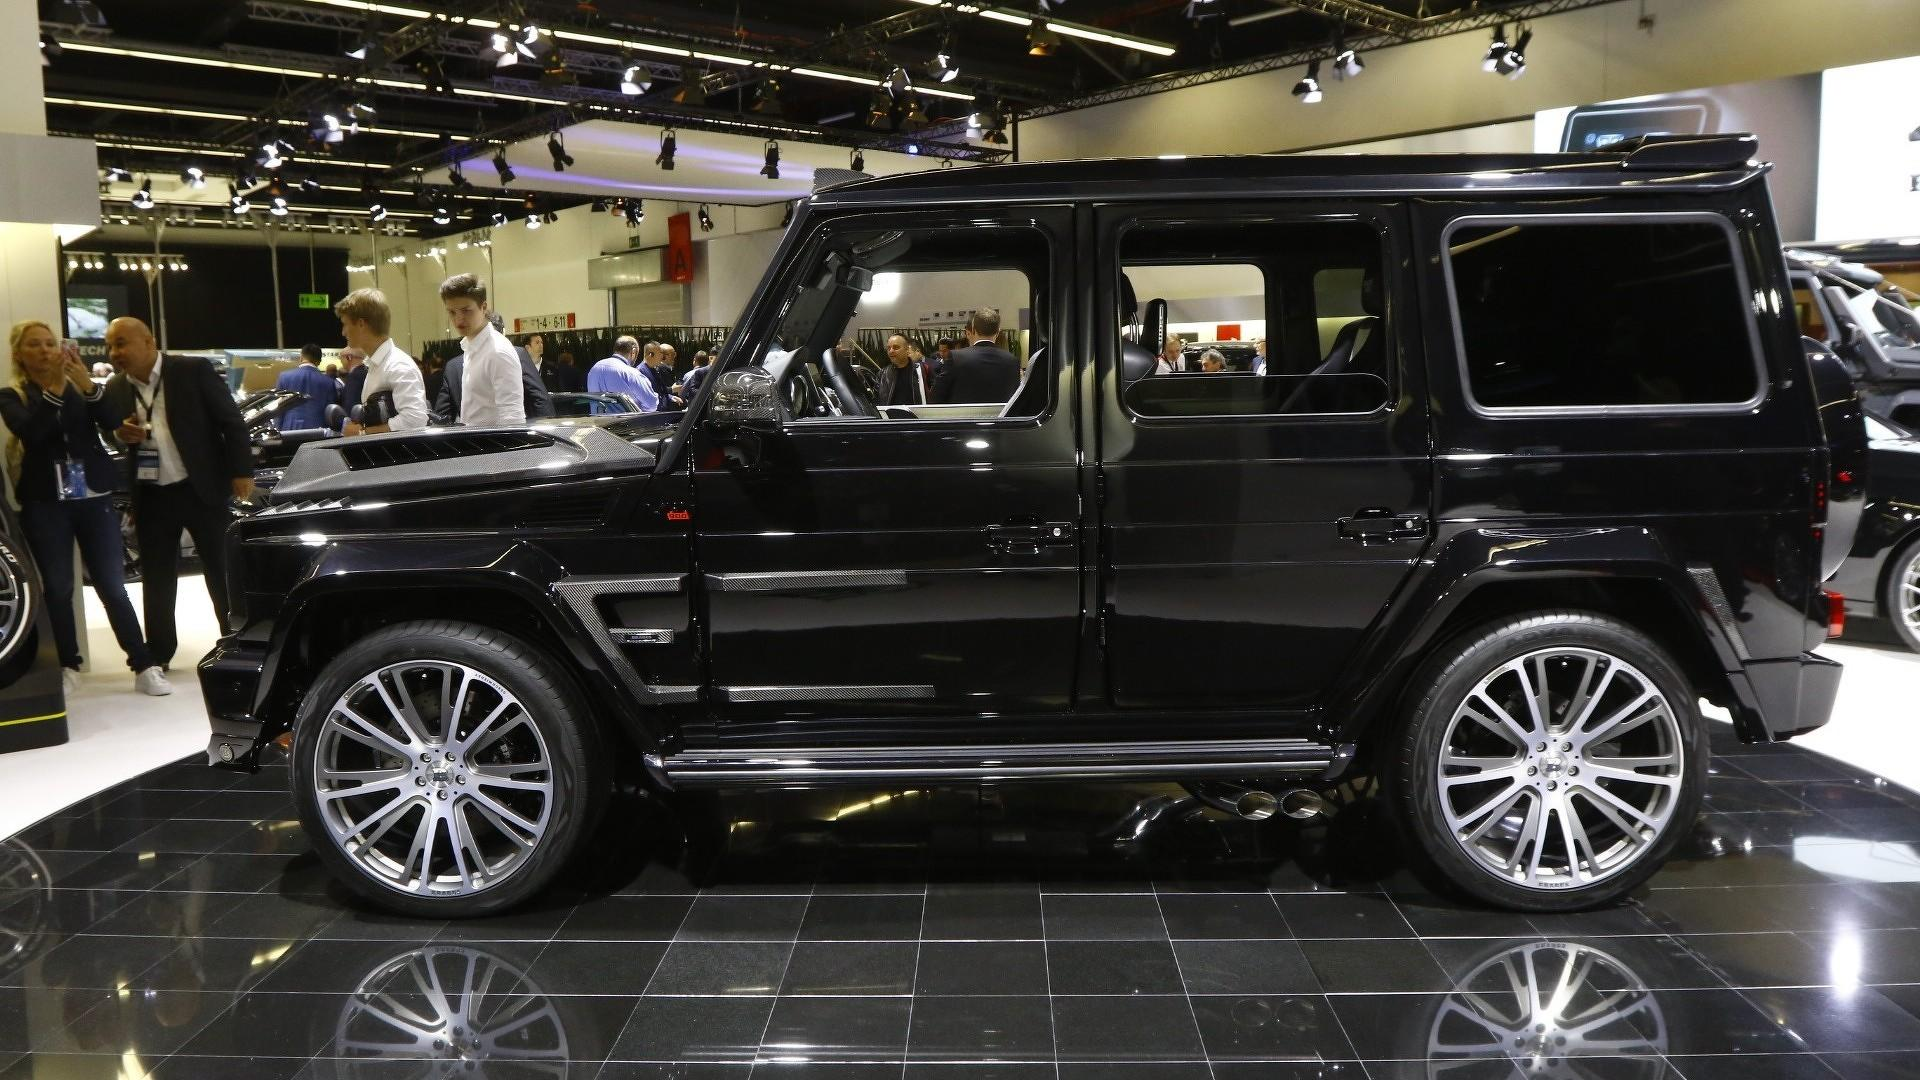 Bonkers 888 Horsepower Brabus G65 Costs 800 000